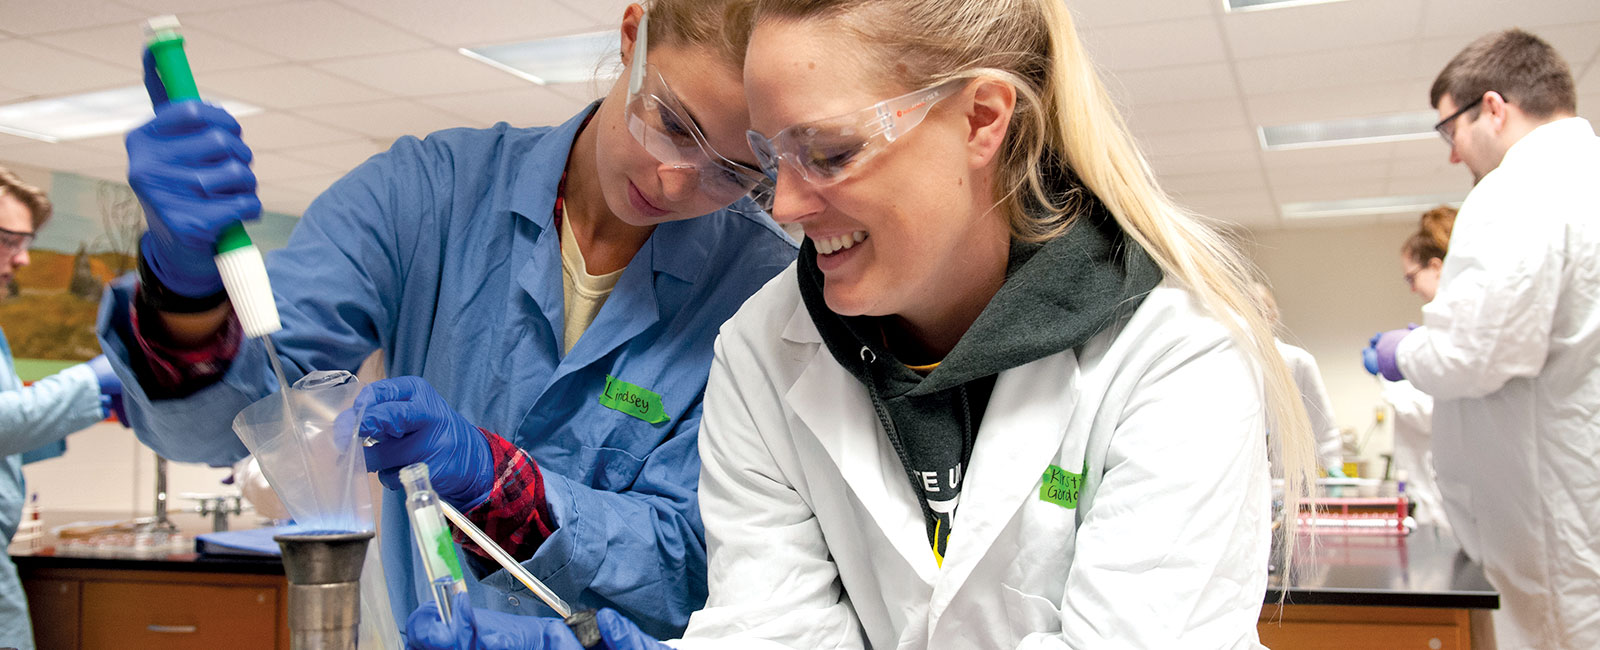 Two female students working in a lab.